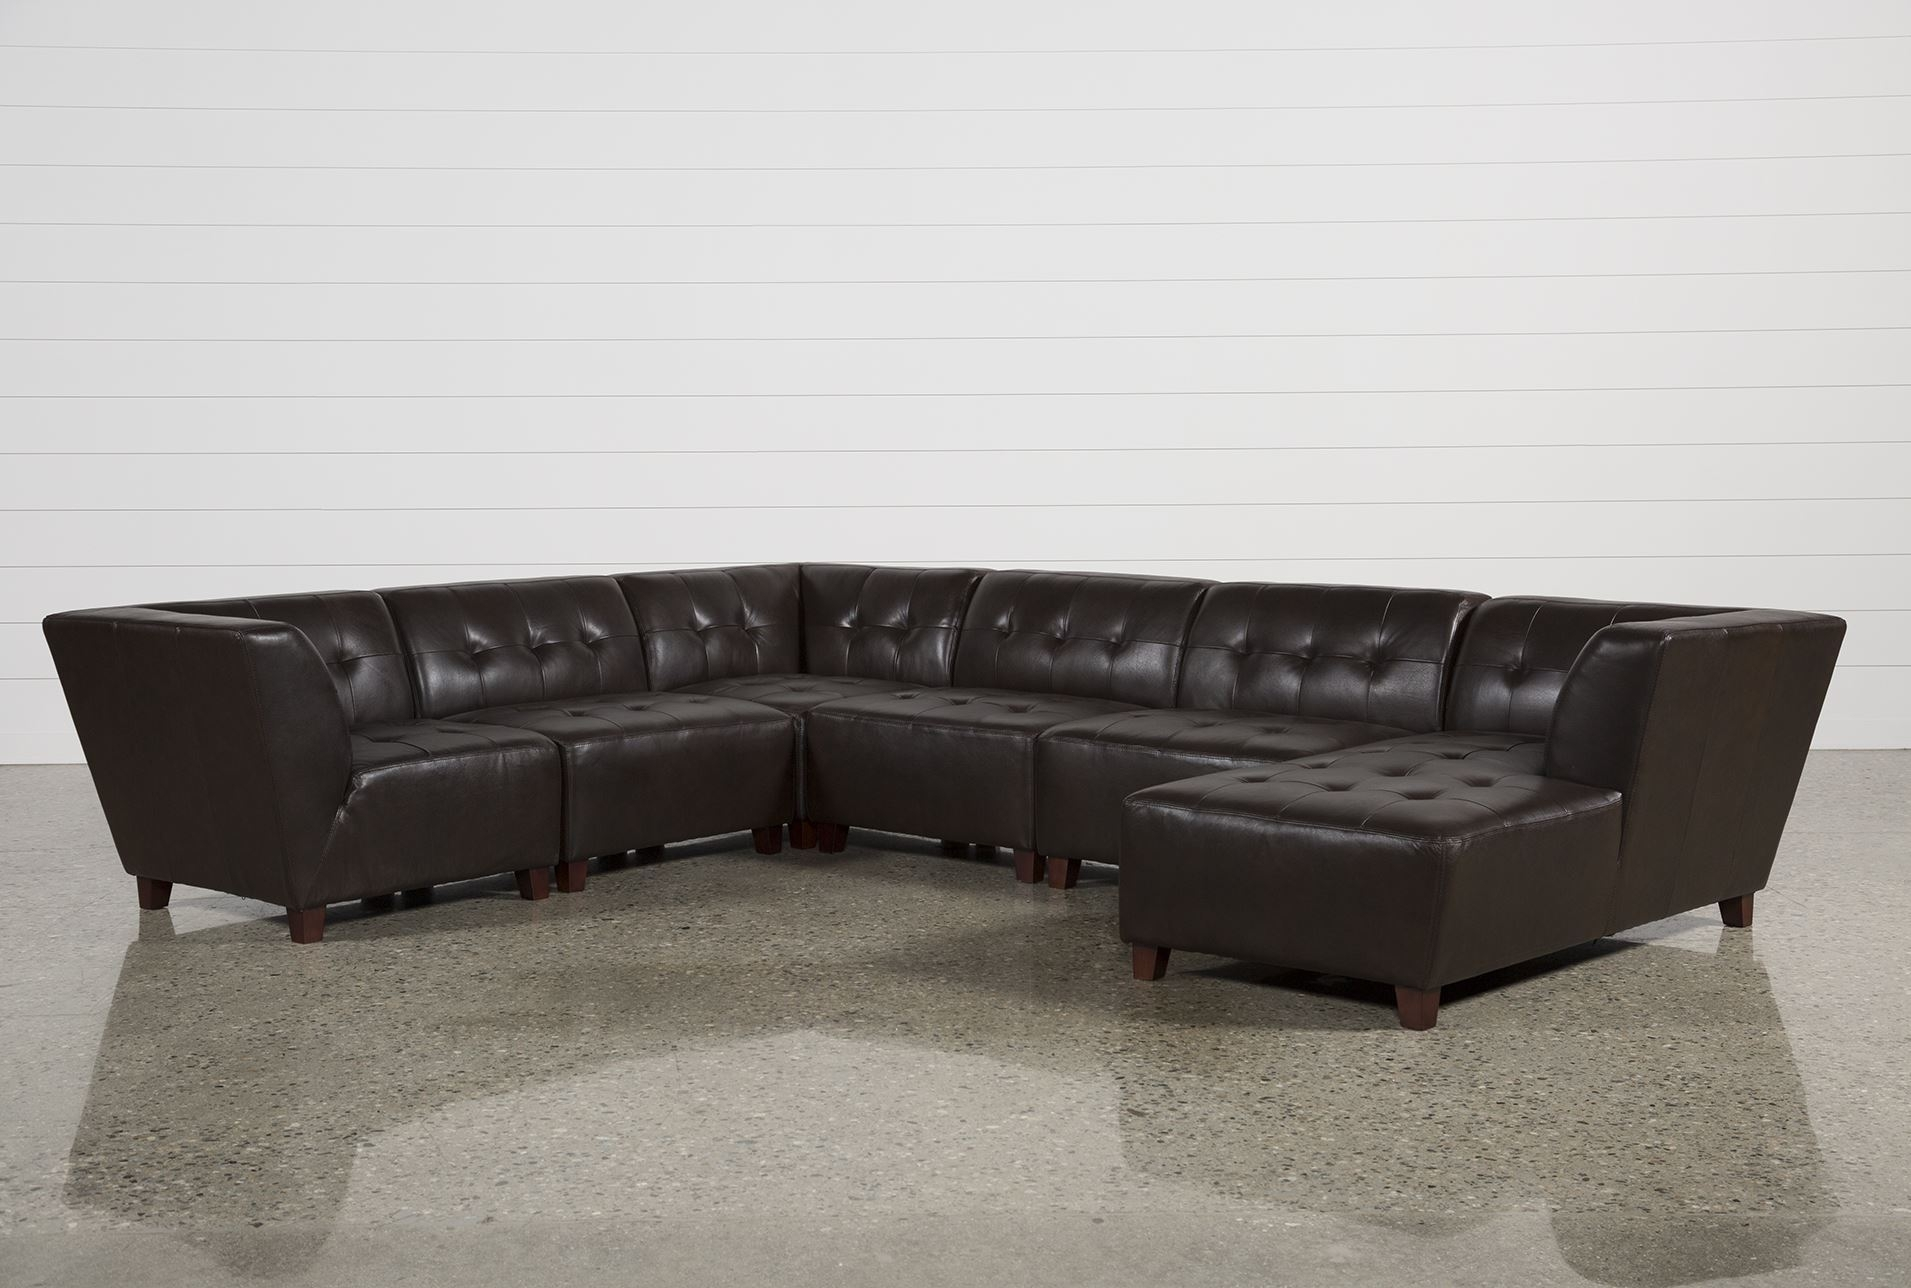 6 Piece Leather Sectional Sofa – Cleanupflorida With Regard To 6 Piece Leather Sectional Sofas (Photo 9 of 10)